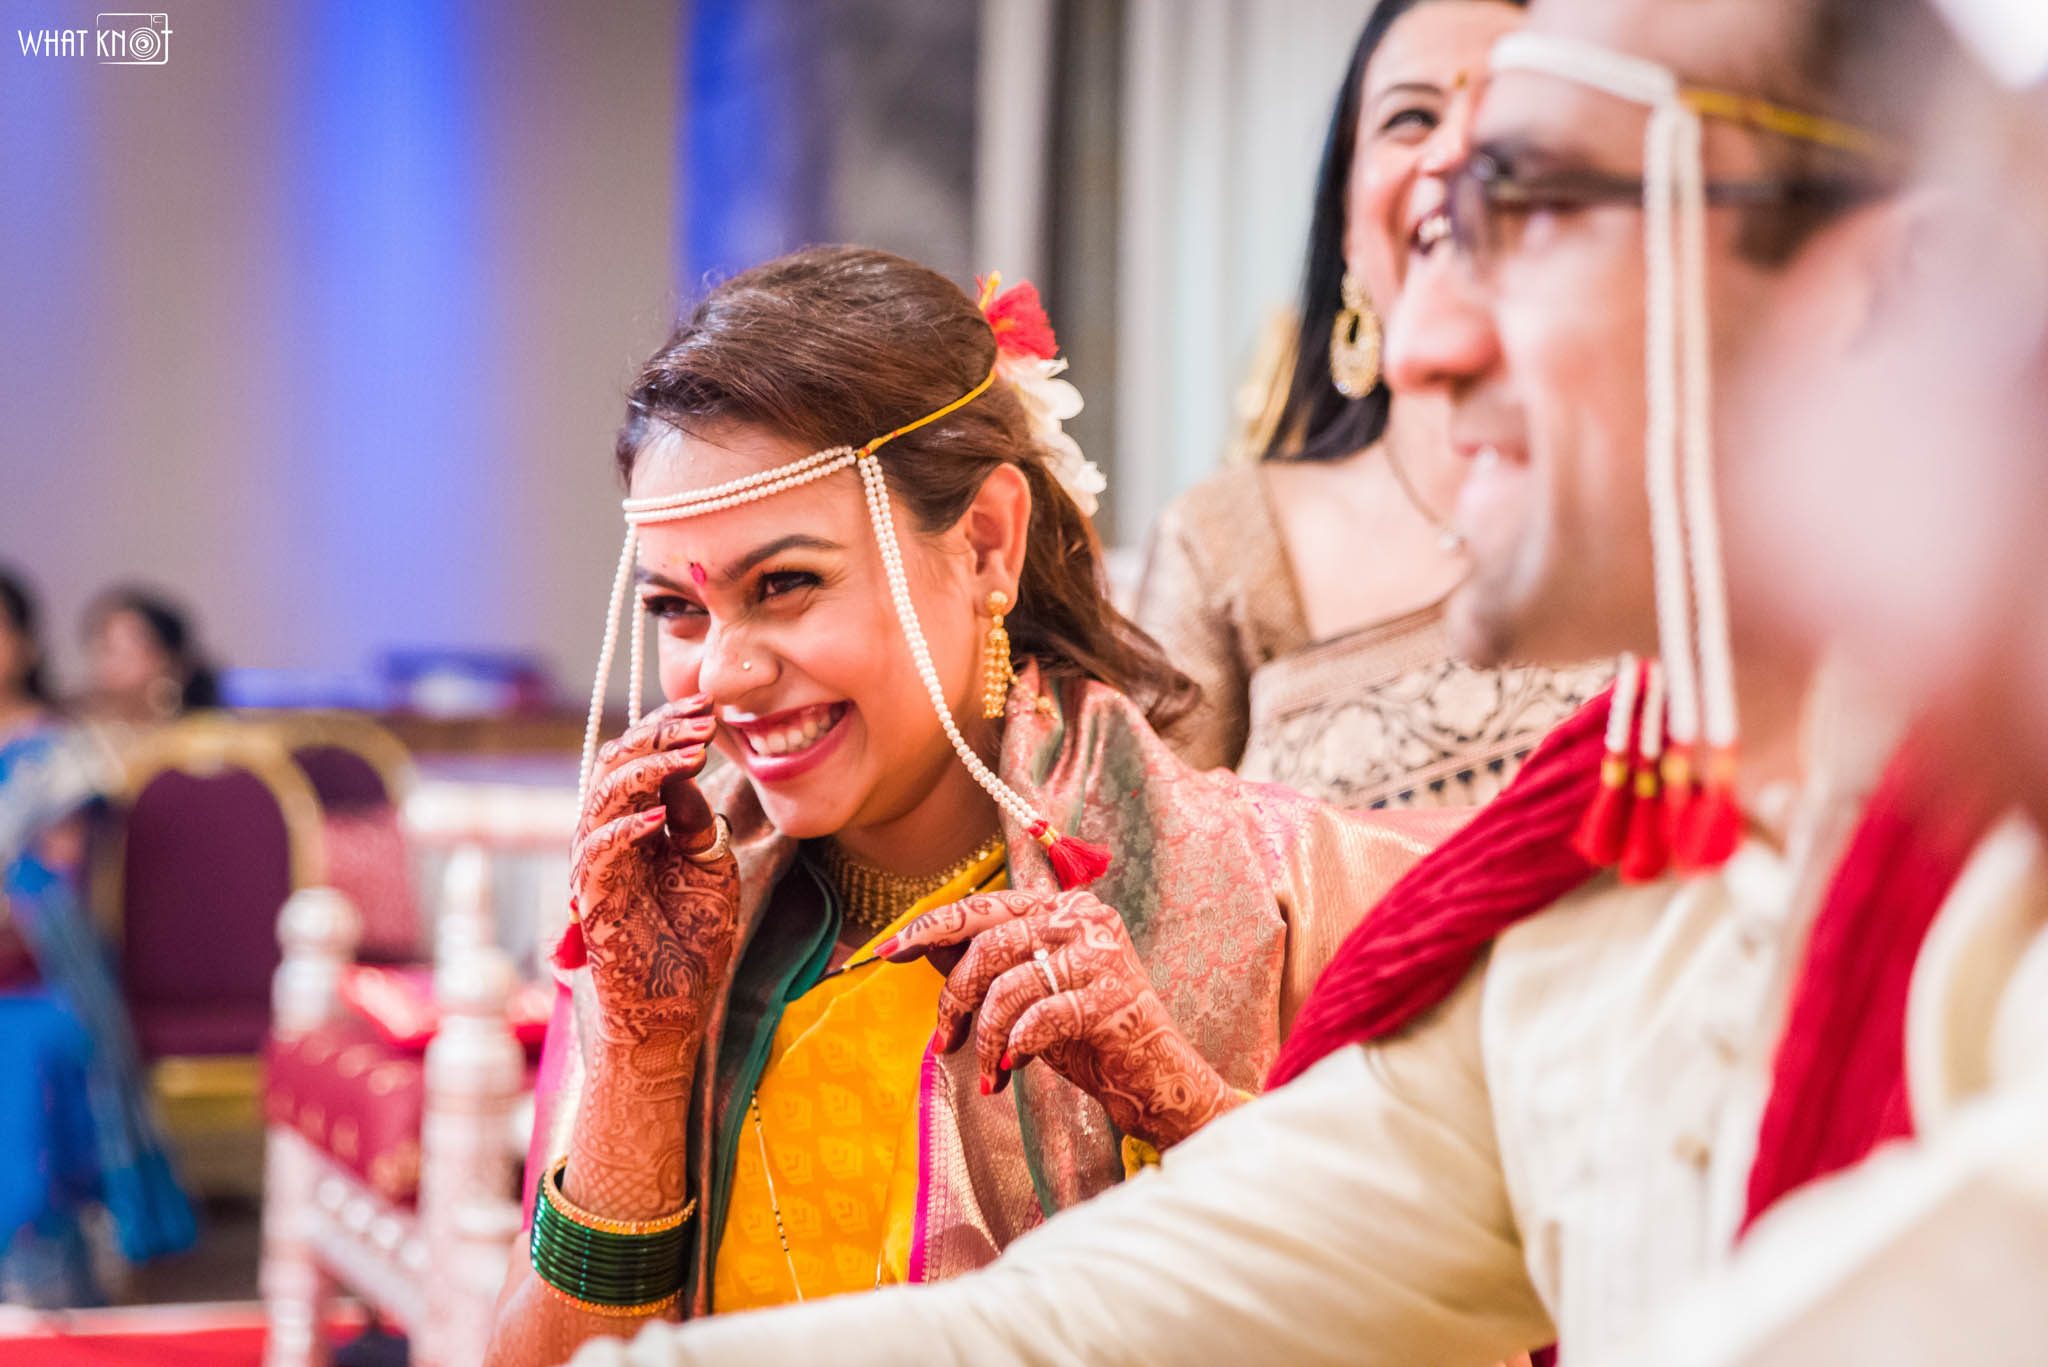 Candid-Wedding-Photography-WhatKnot-Marathi-141